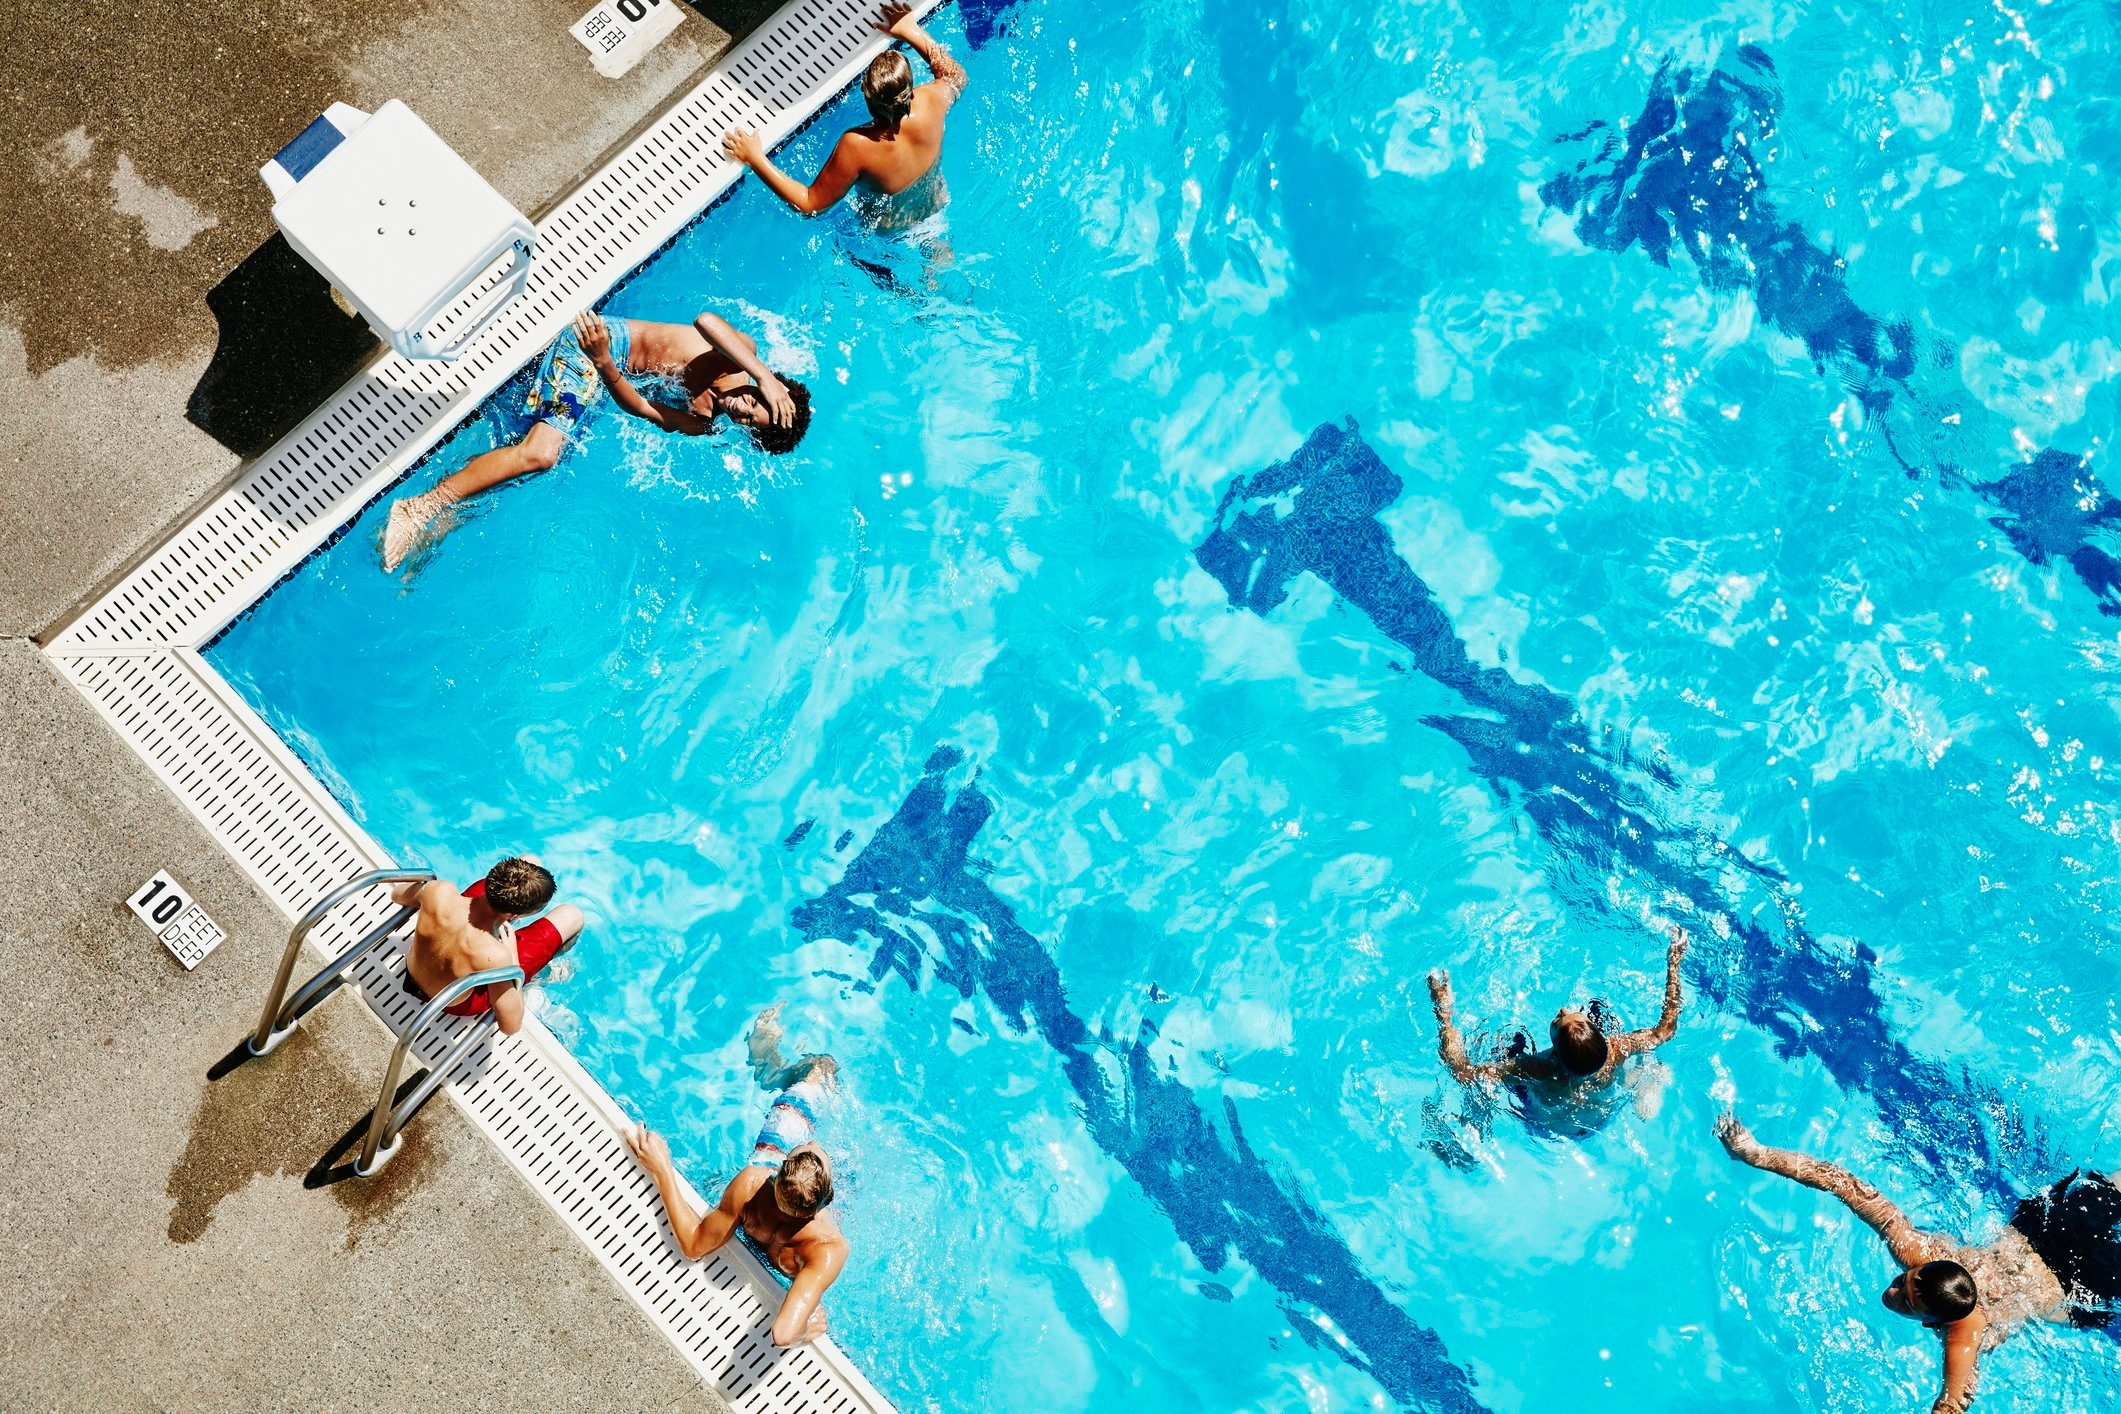 aerial shot of people in swimming pool | catch coronavirus from swimming